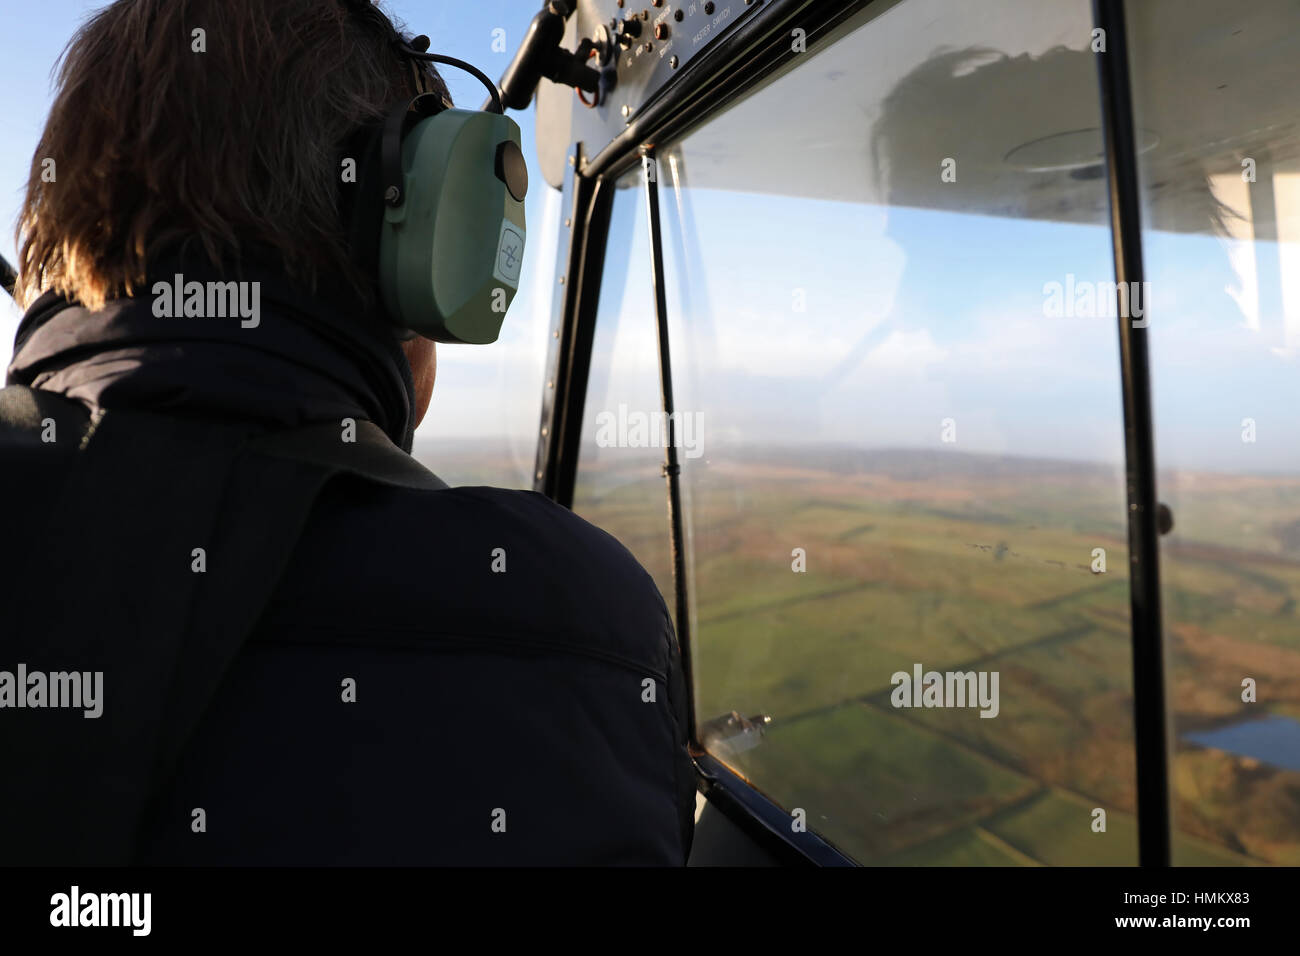 a view from inside the cockpit of a Piper Supercub PA18 light aircraft flying at 1500 feet - Stock Image